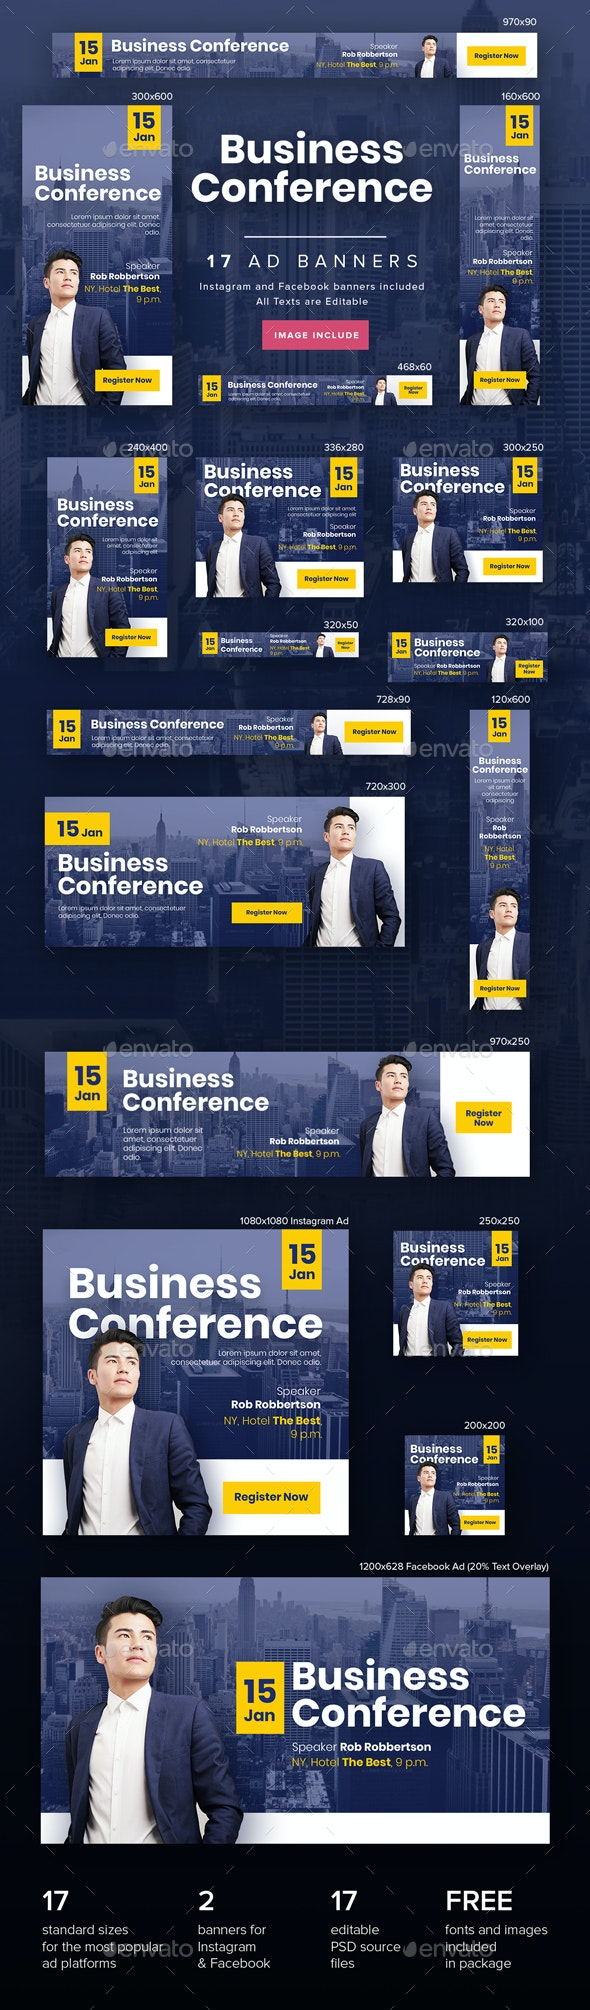 Business Conference Ad Banners - Banners & Ads Web Elements